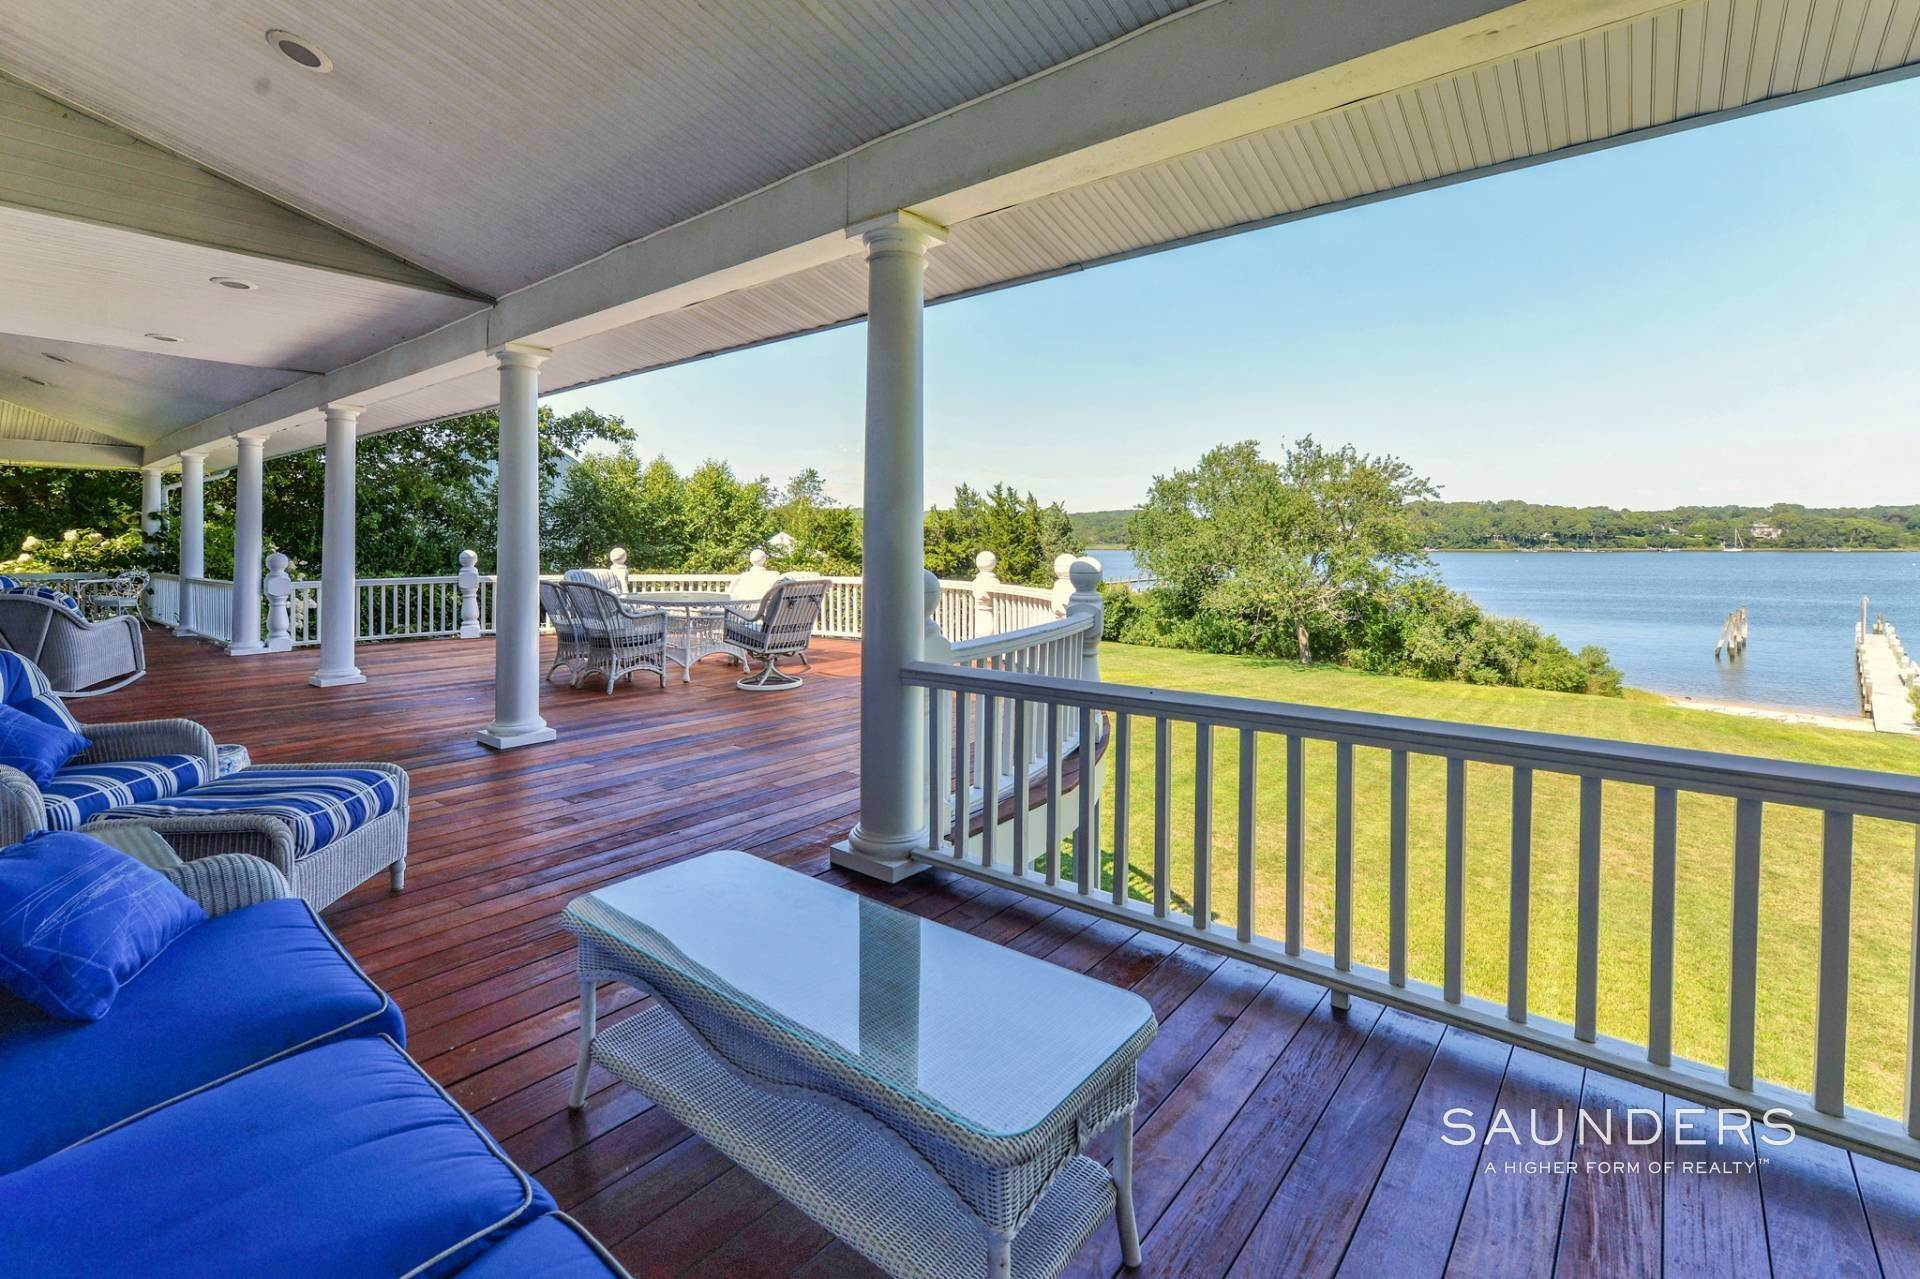 22. Single Family Homes for Sale at Estate Section Compound With Deep Water Dock, Sandy Beach, Pool 58 Westmoreland Drive, Shelter Island Heights, Shelter Island, NY 11964